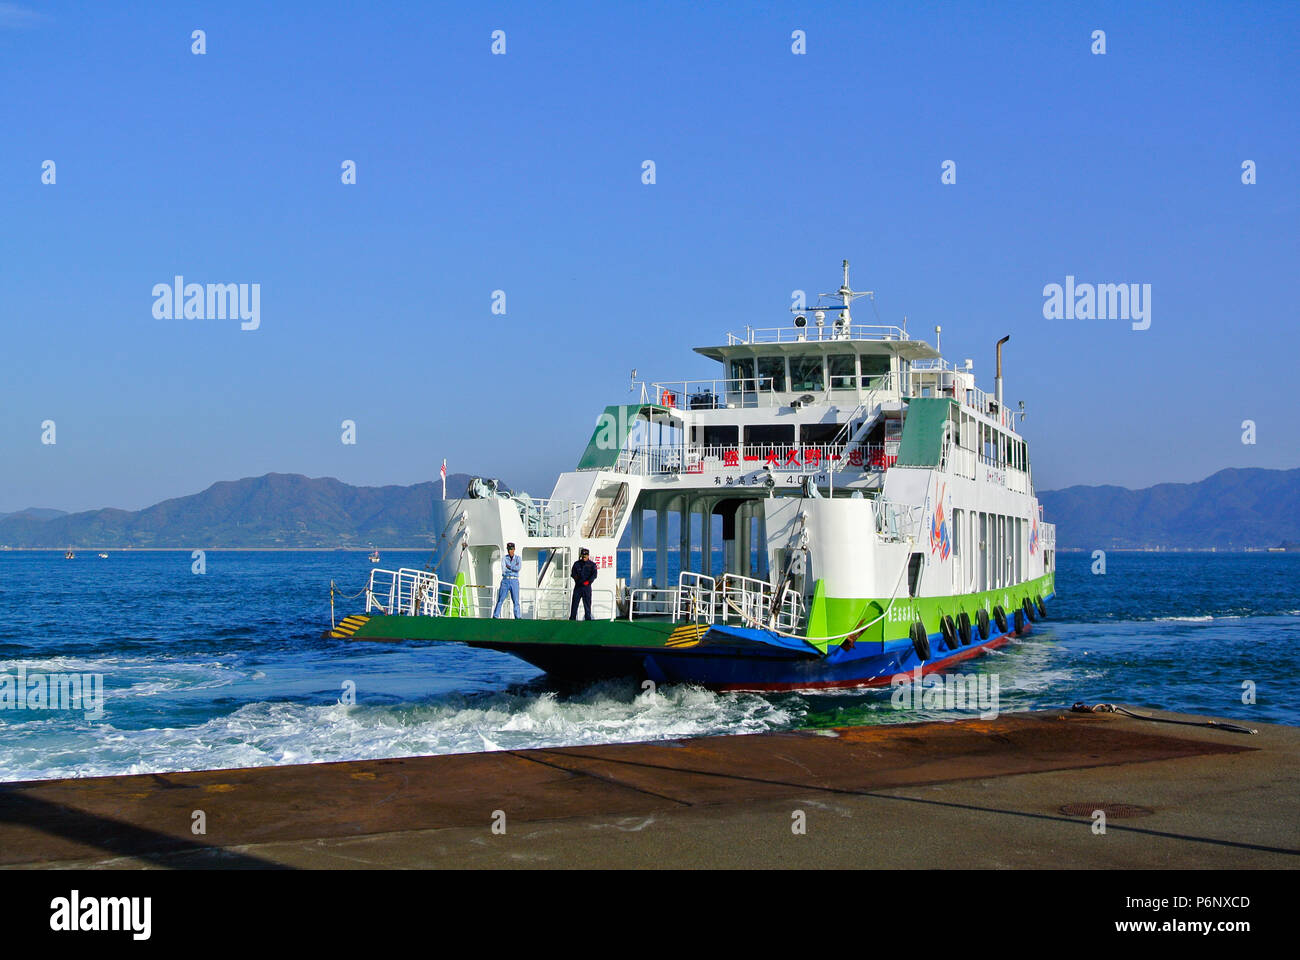 Ferry boat embarking at Setonaikai National Park, Hiroshima, Japan Stock Photo